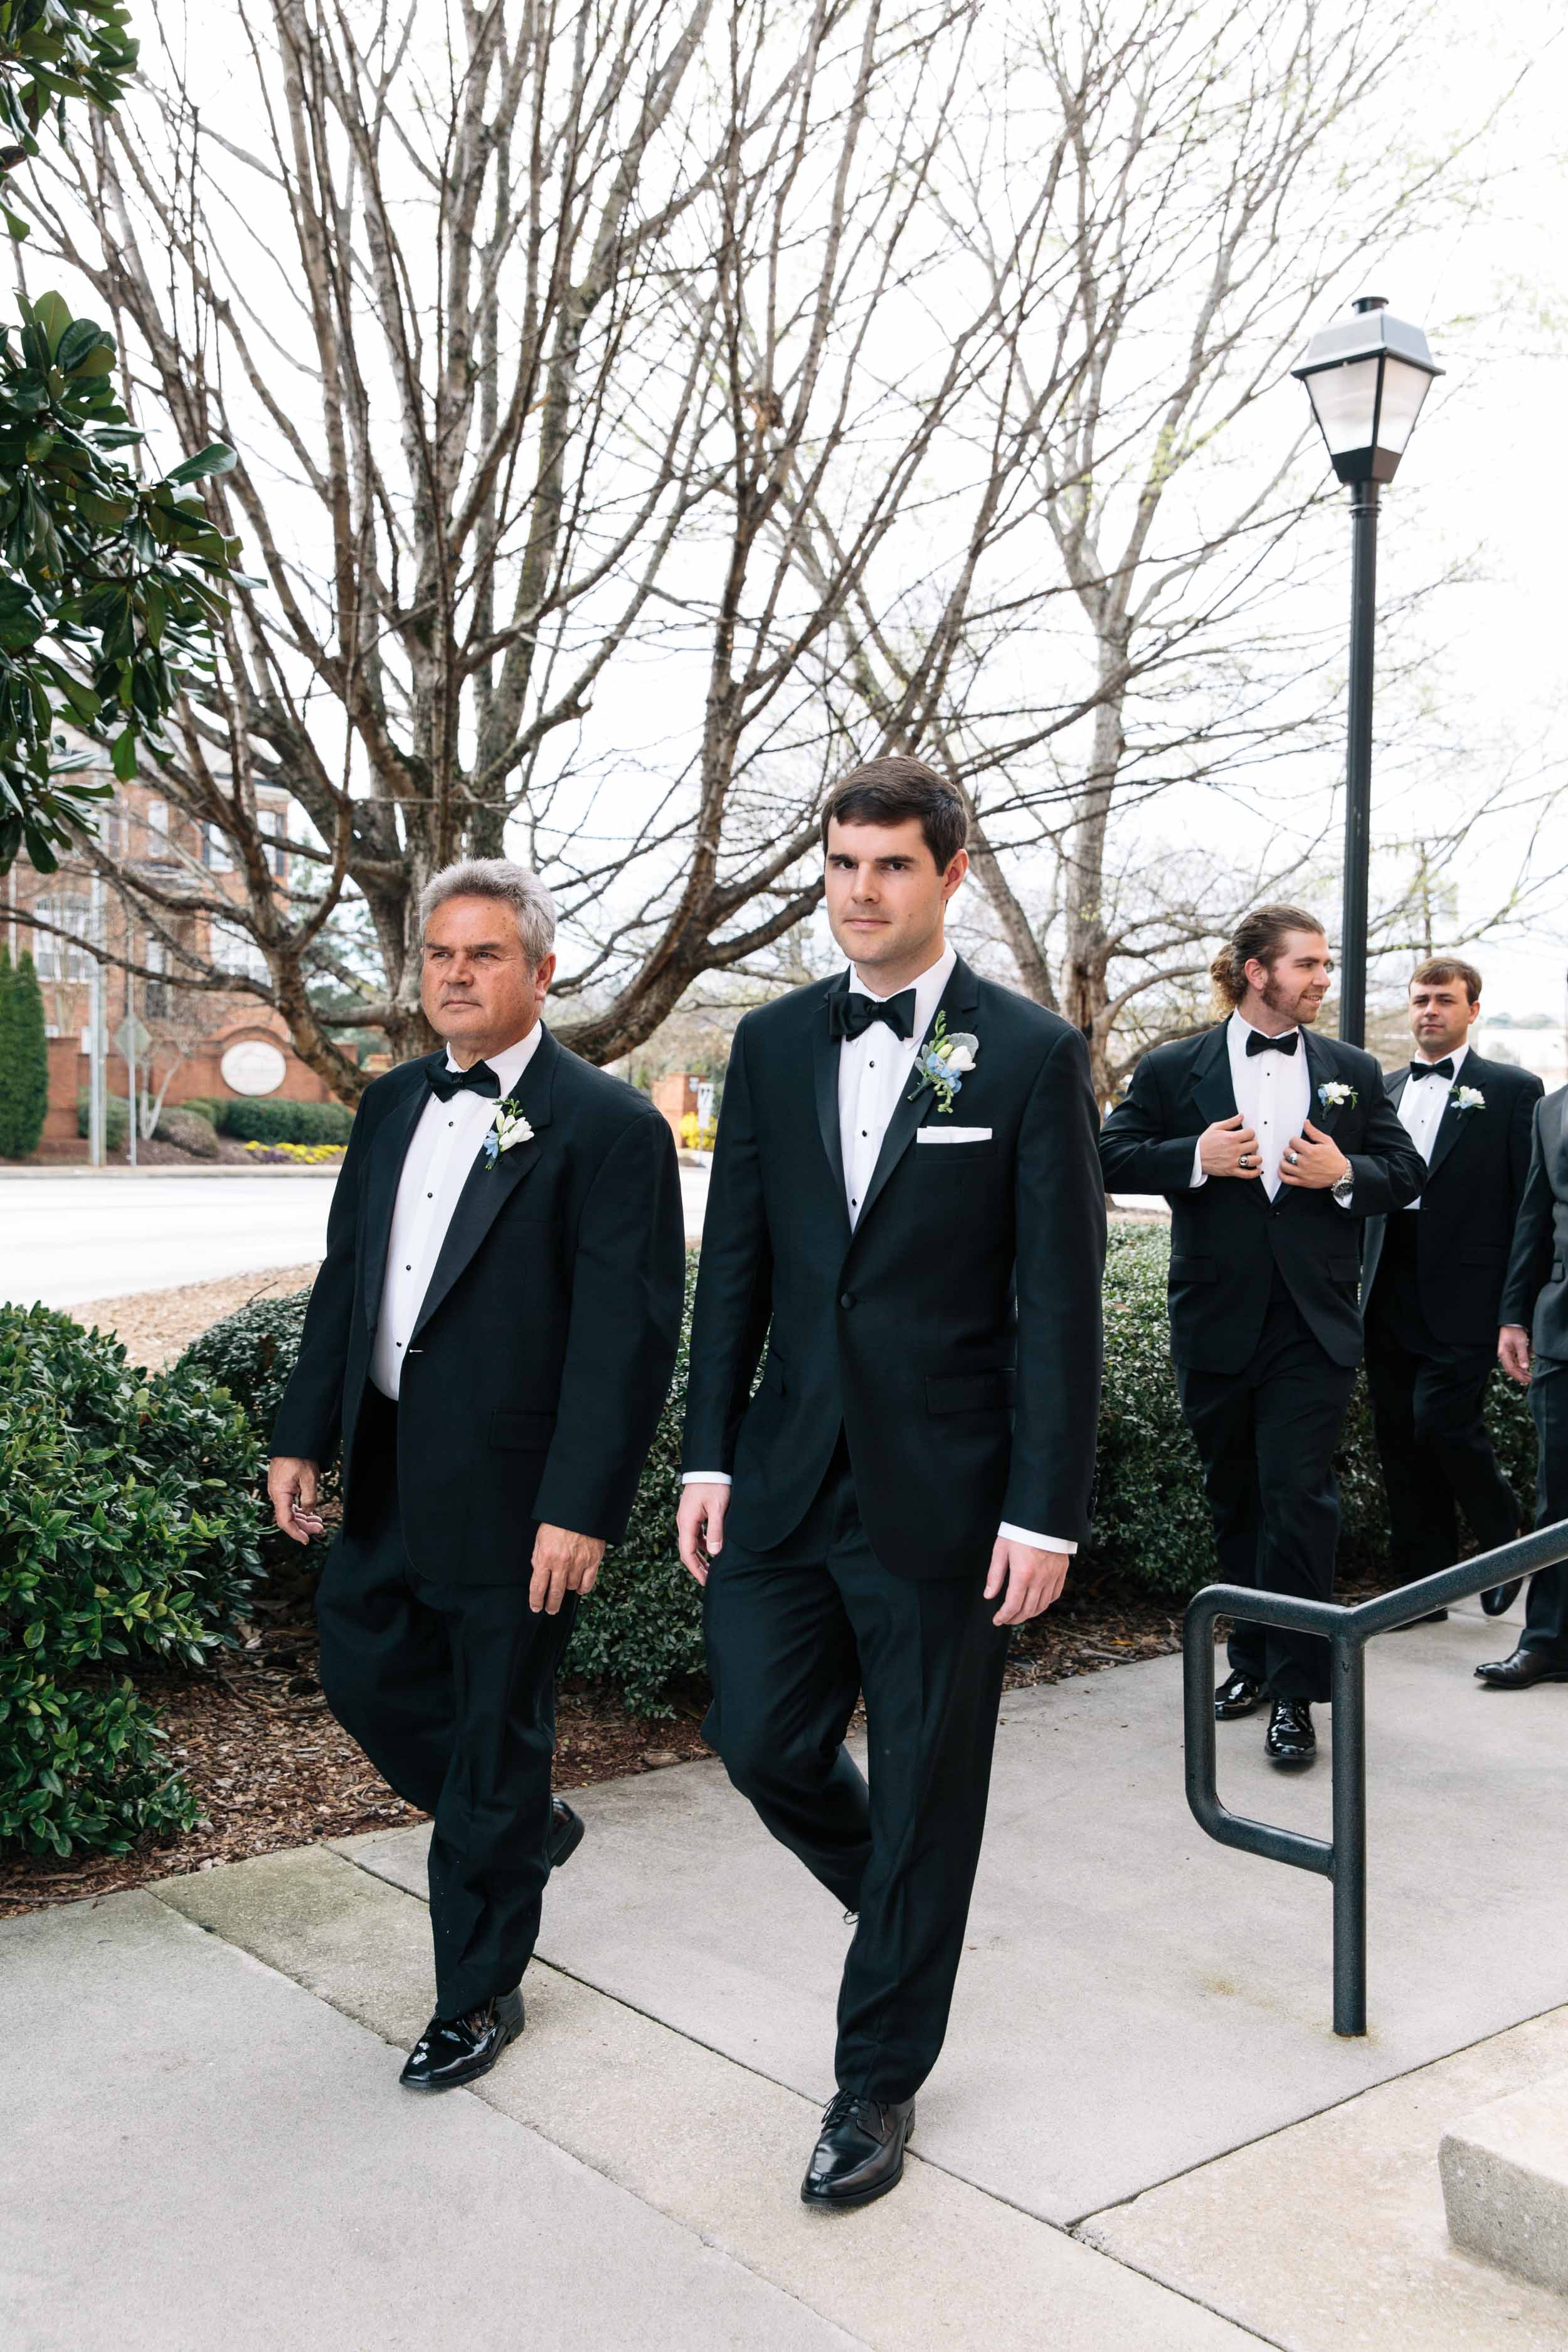 jimmy-rowalt-atlanta-wedding-photography-059.jpg